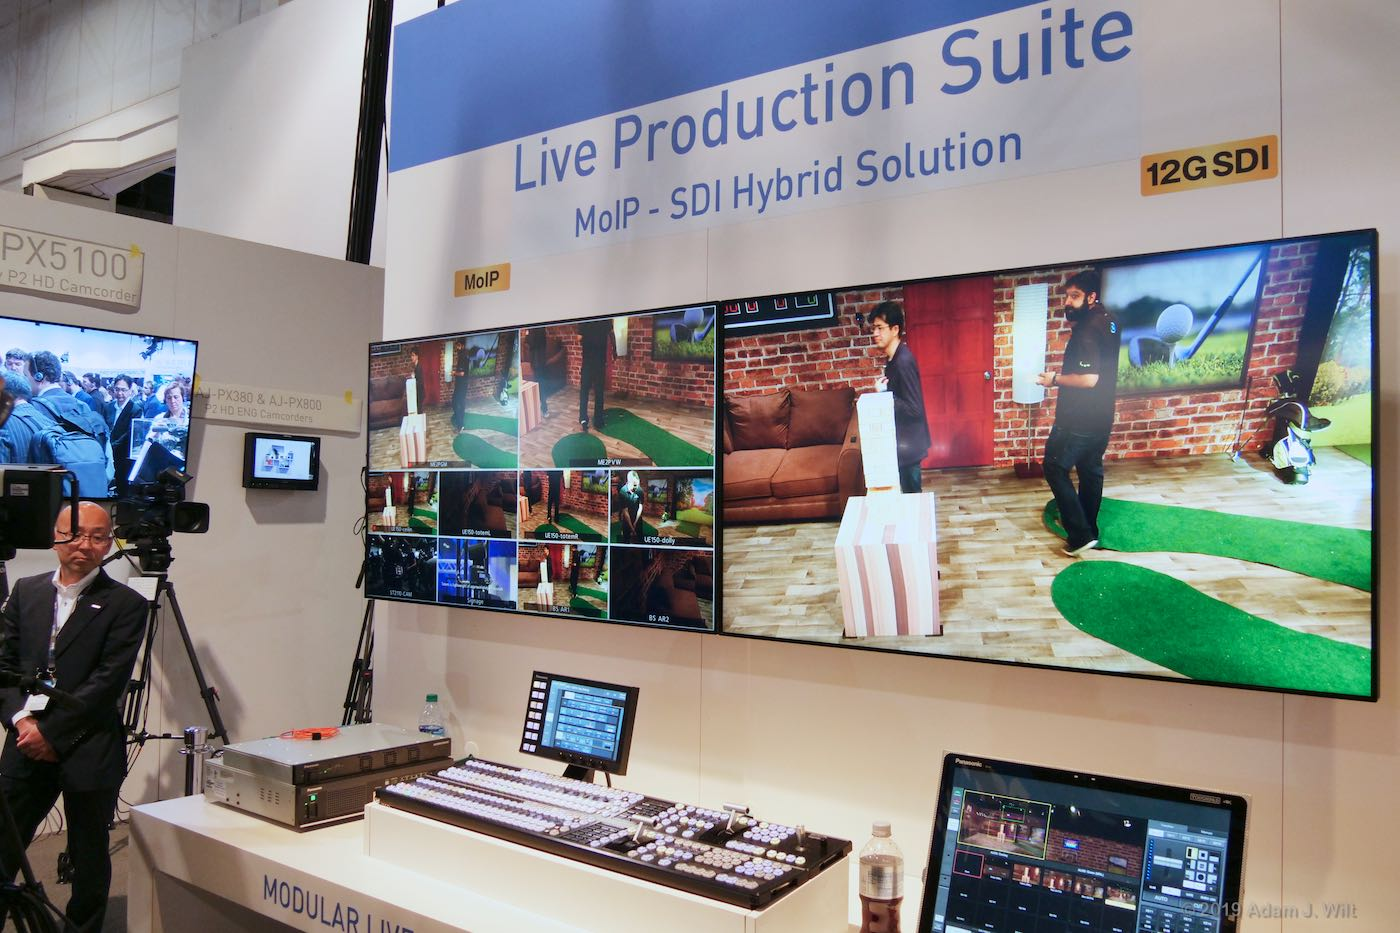 Panasonic's Live Production Suite demo